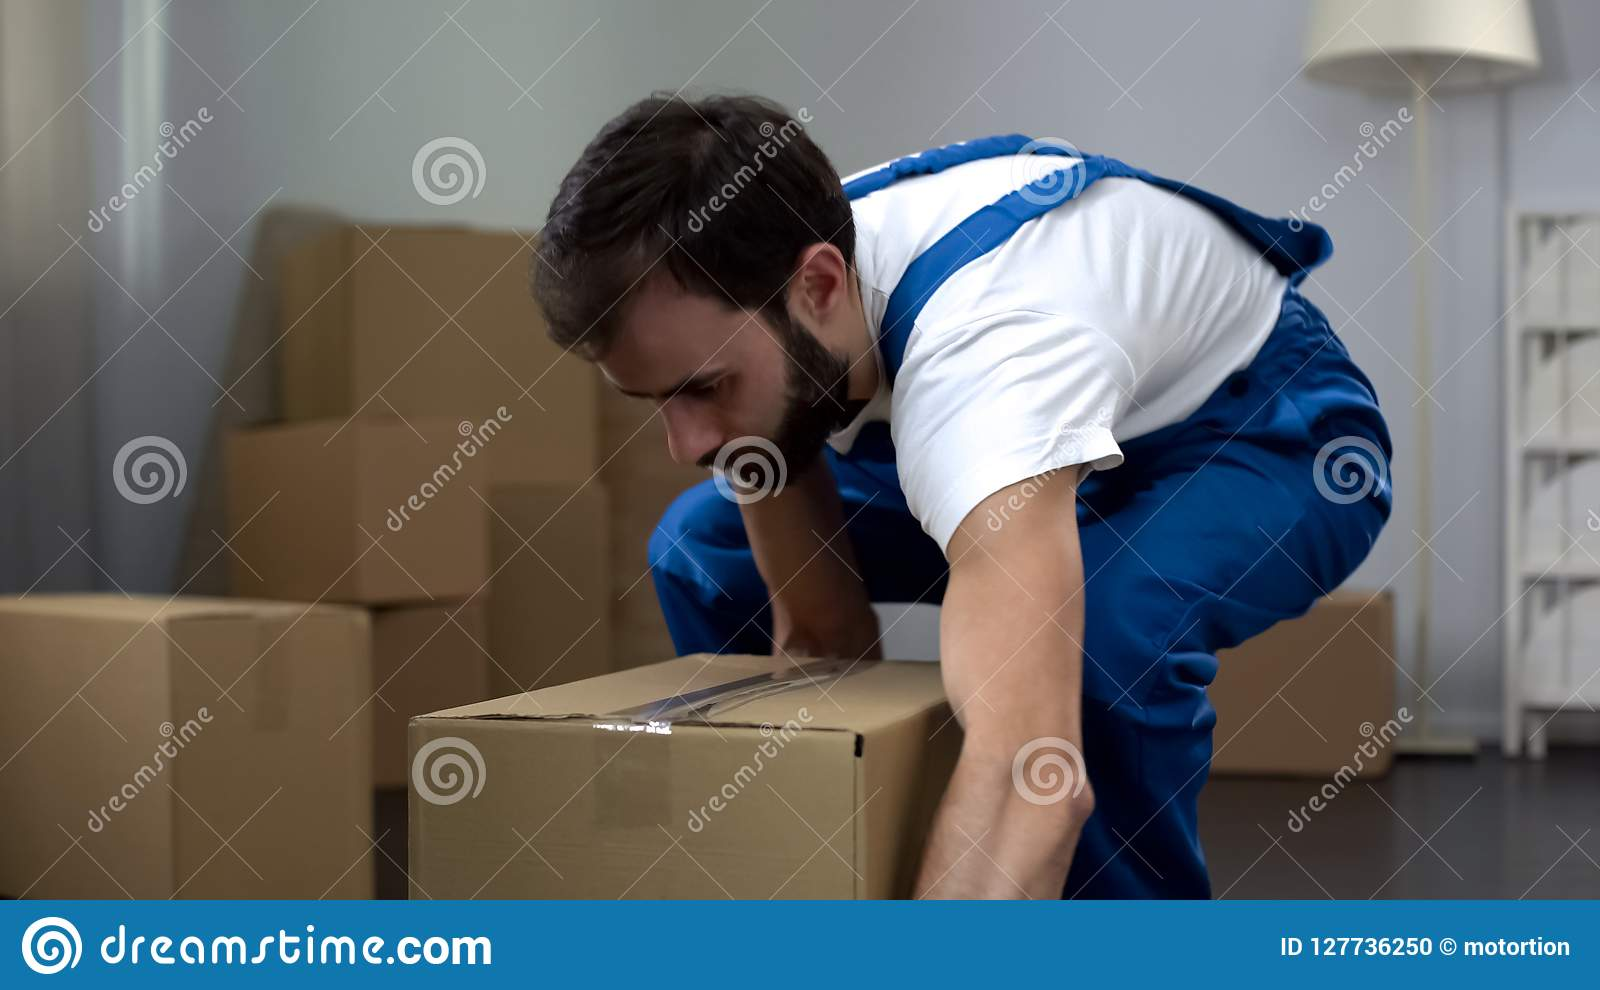 Worker from moving company carrying cardboard box, quality relocation services